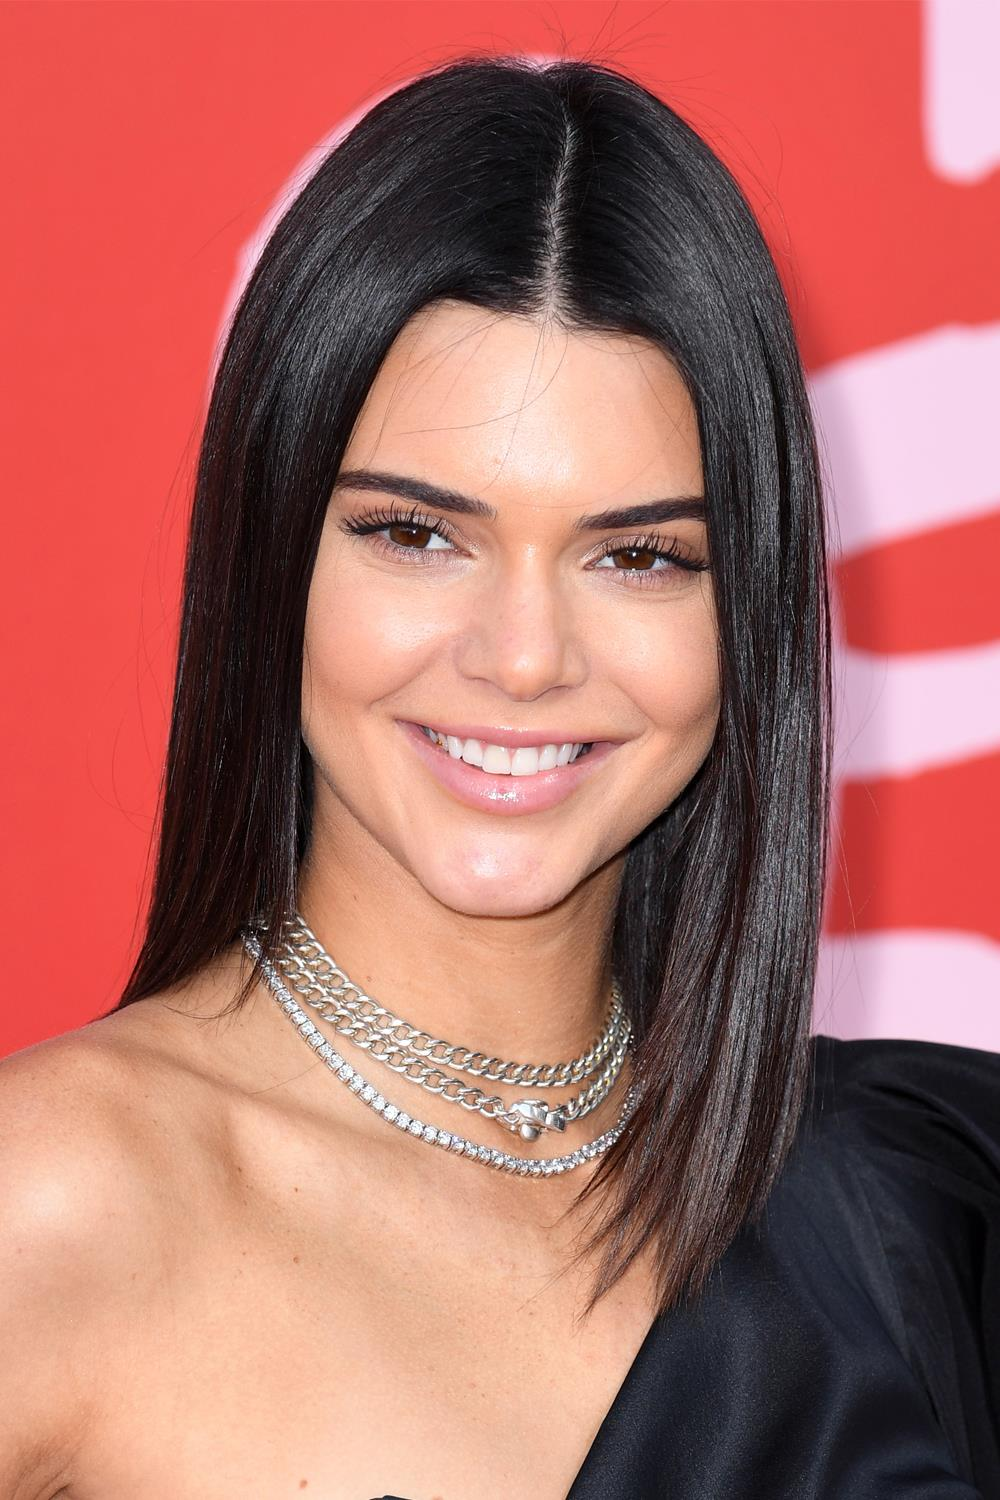 colores pelo otoño 2018 kendall jenner. Kendall Jenner después